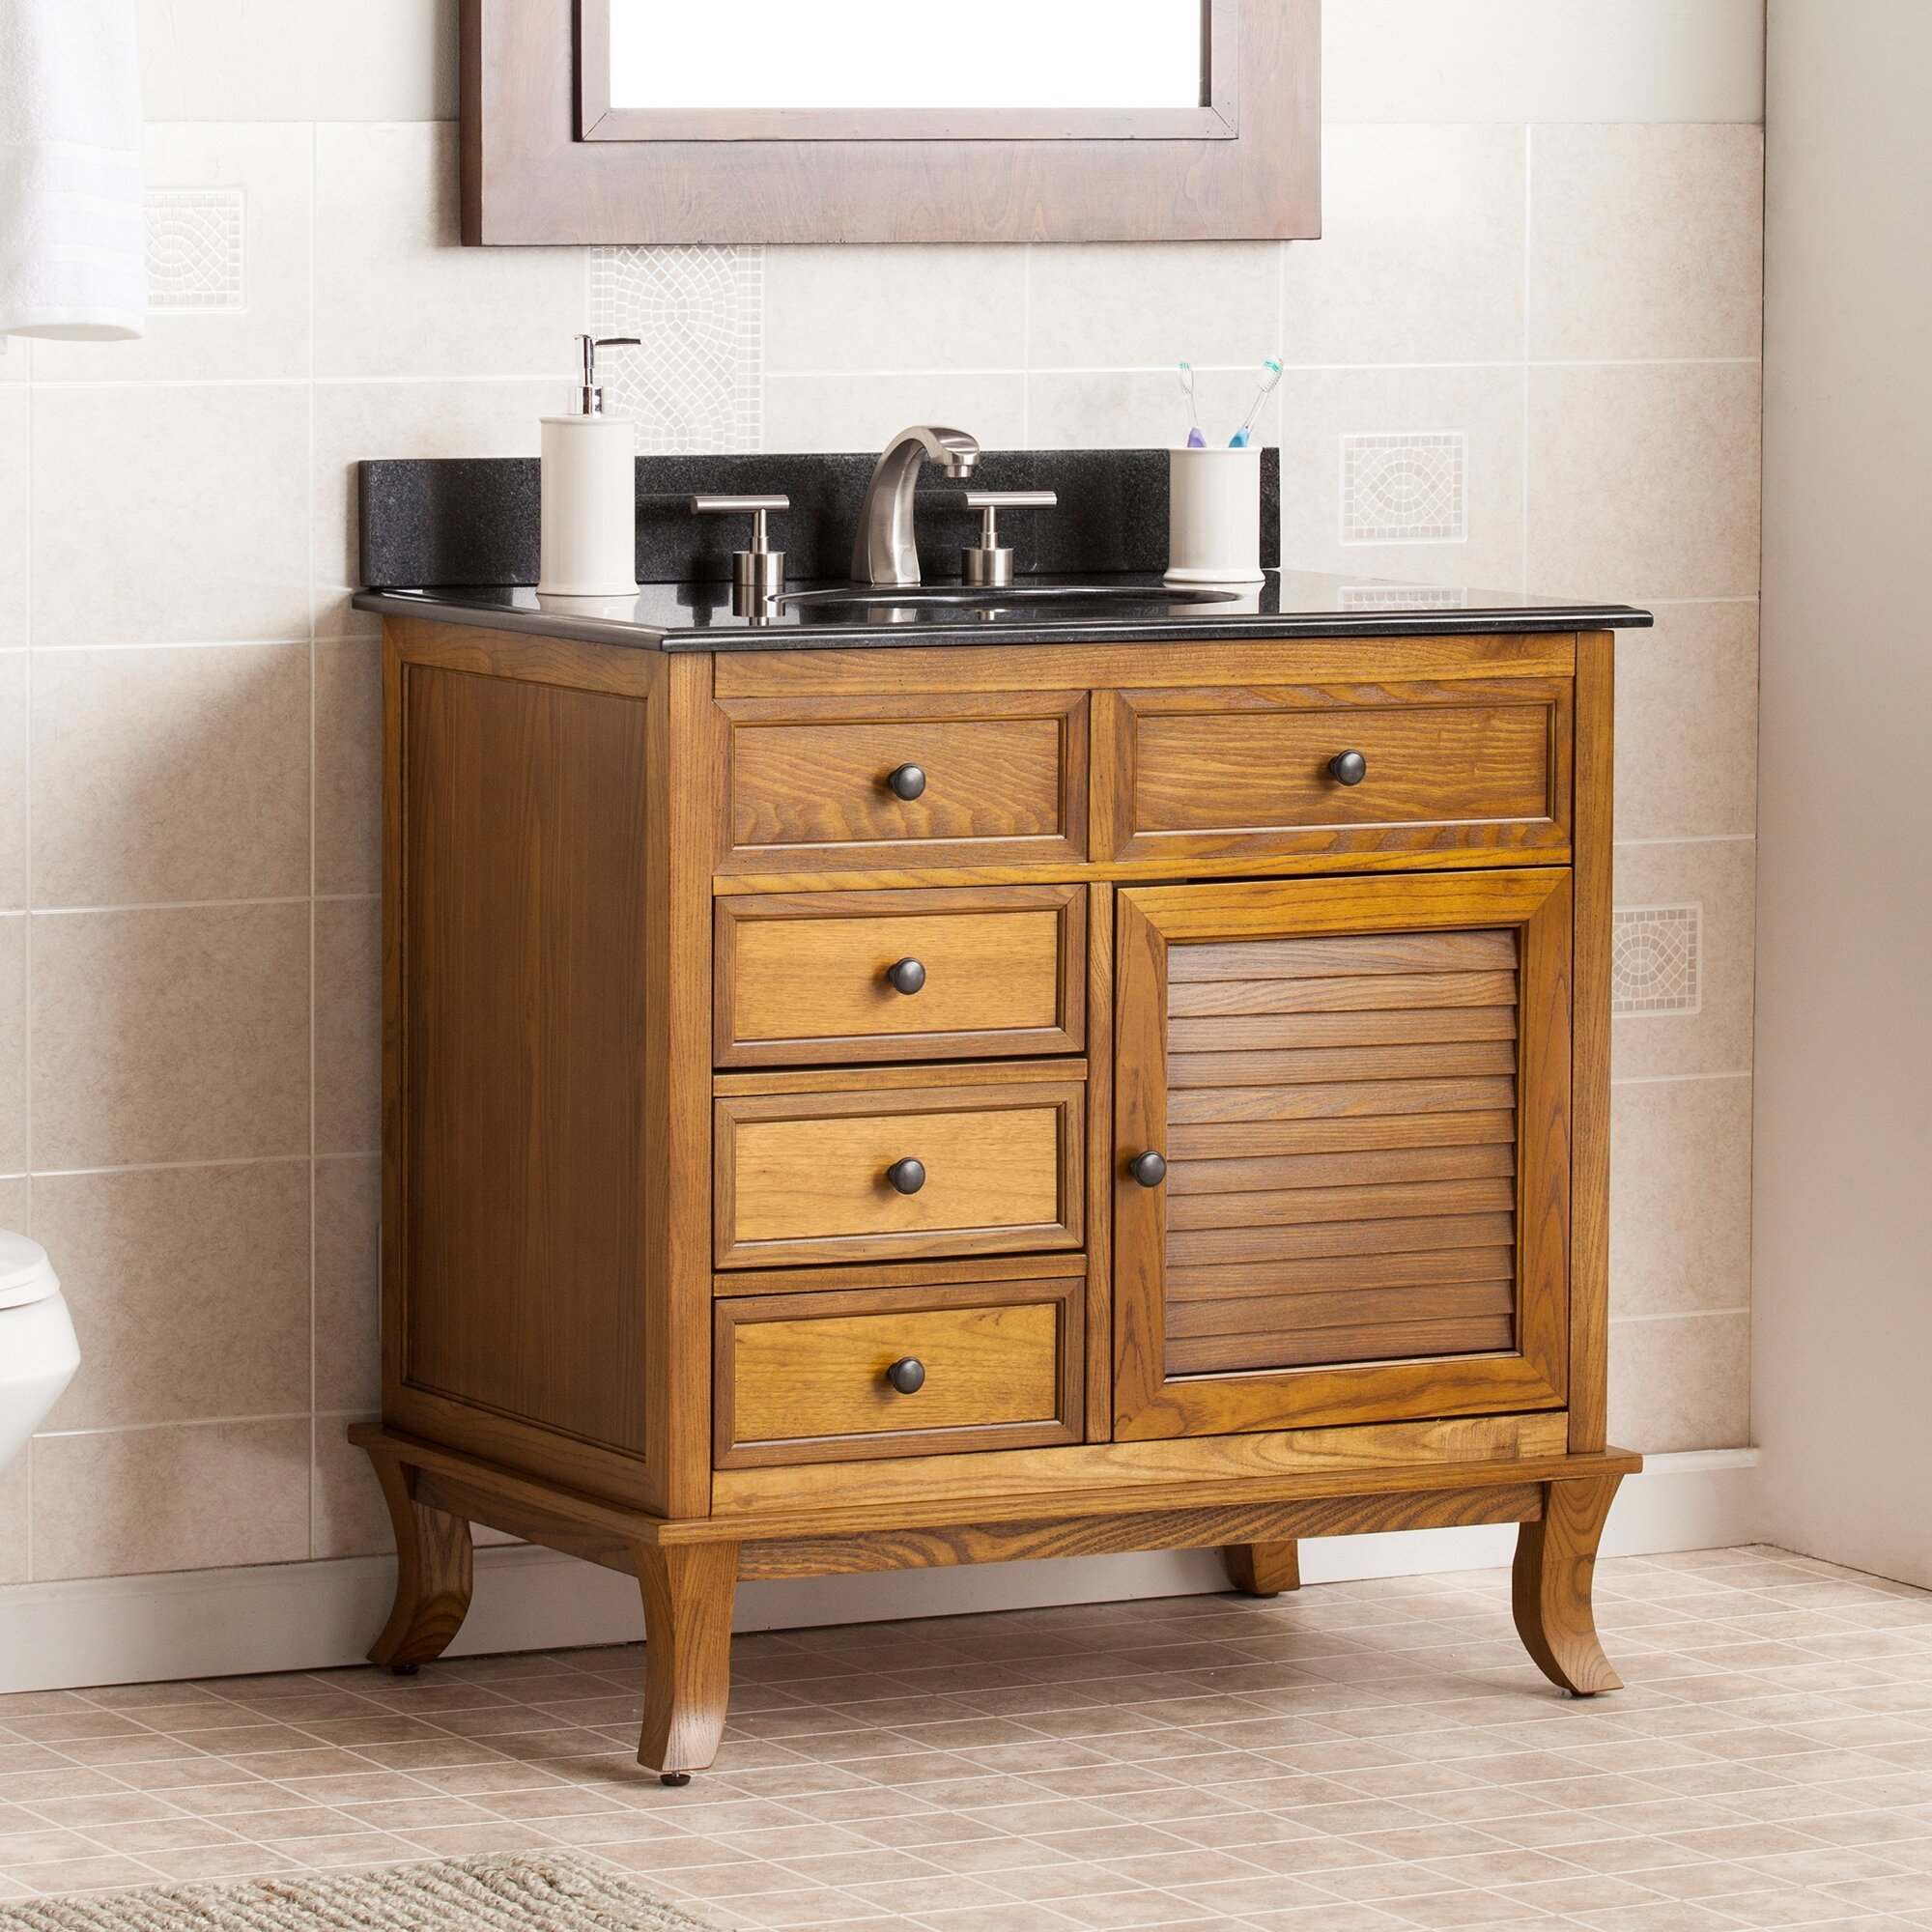 Wildon home waggoner 33 5 single bathroom vanity set for Long bathroom vanity